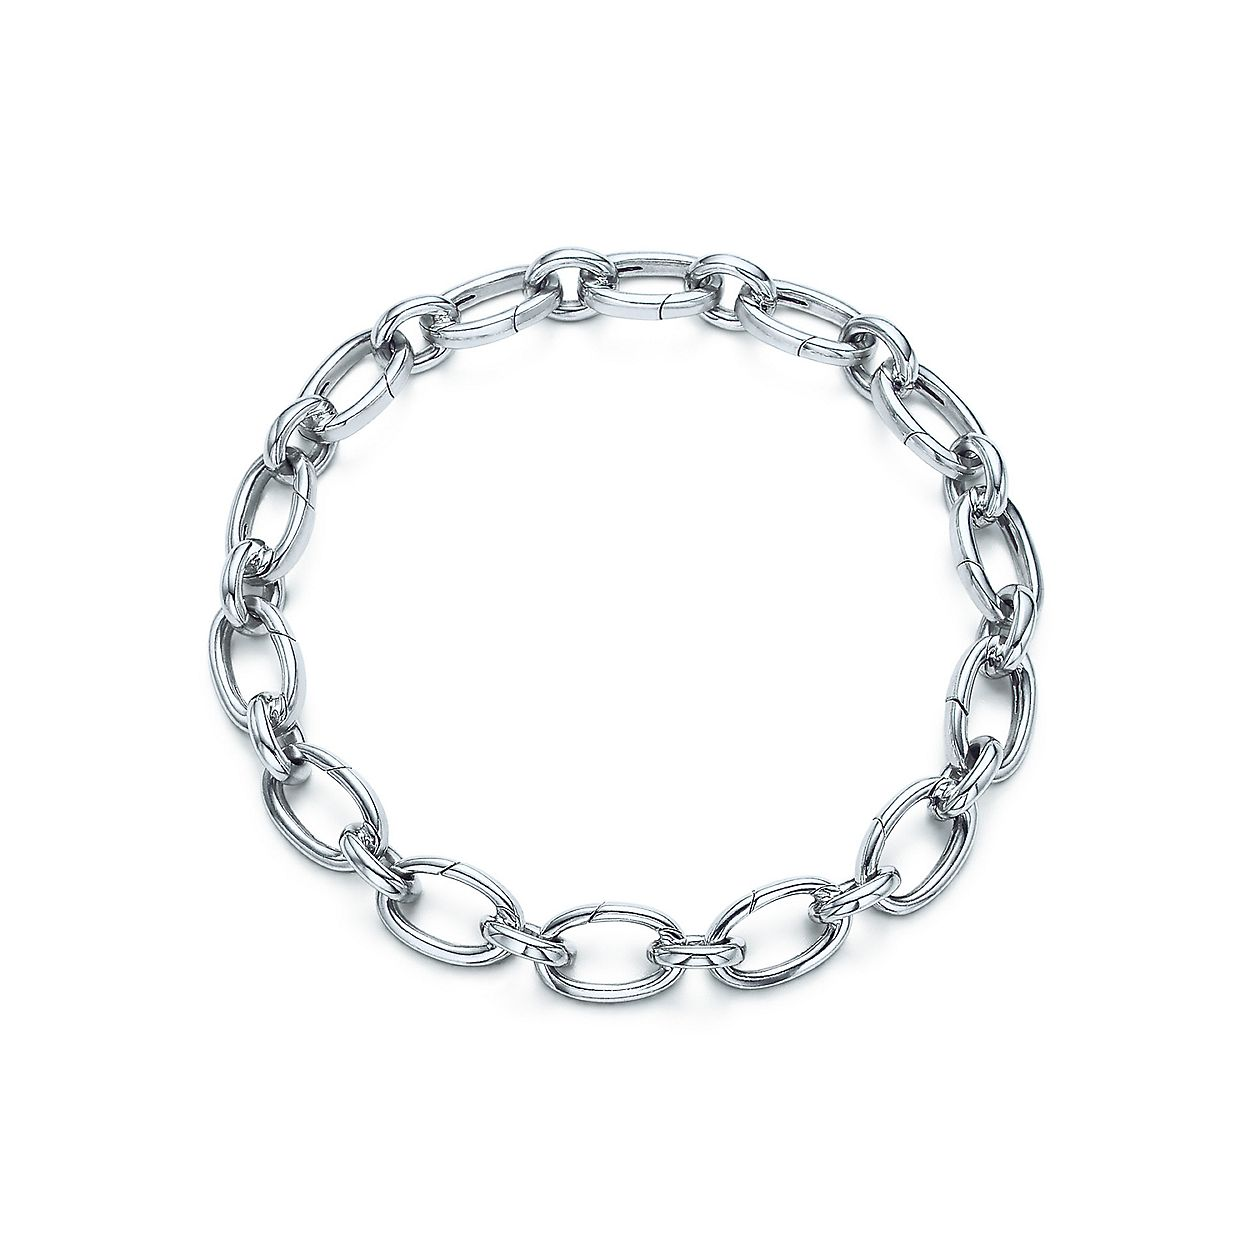 428663932 Oval clasping link bracelet in sterling silver, medium. | Tiffany & Co.